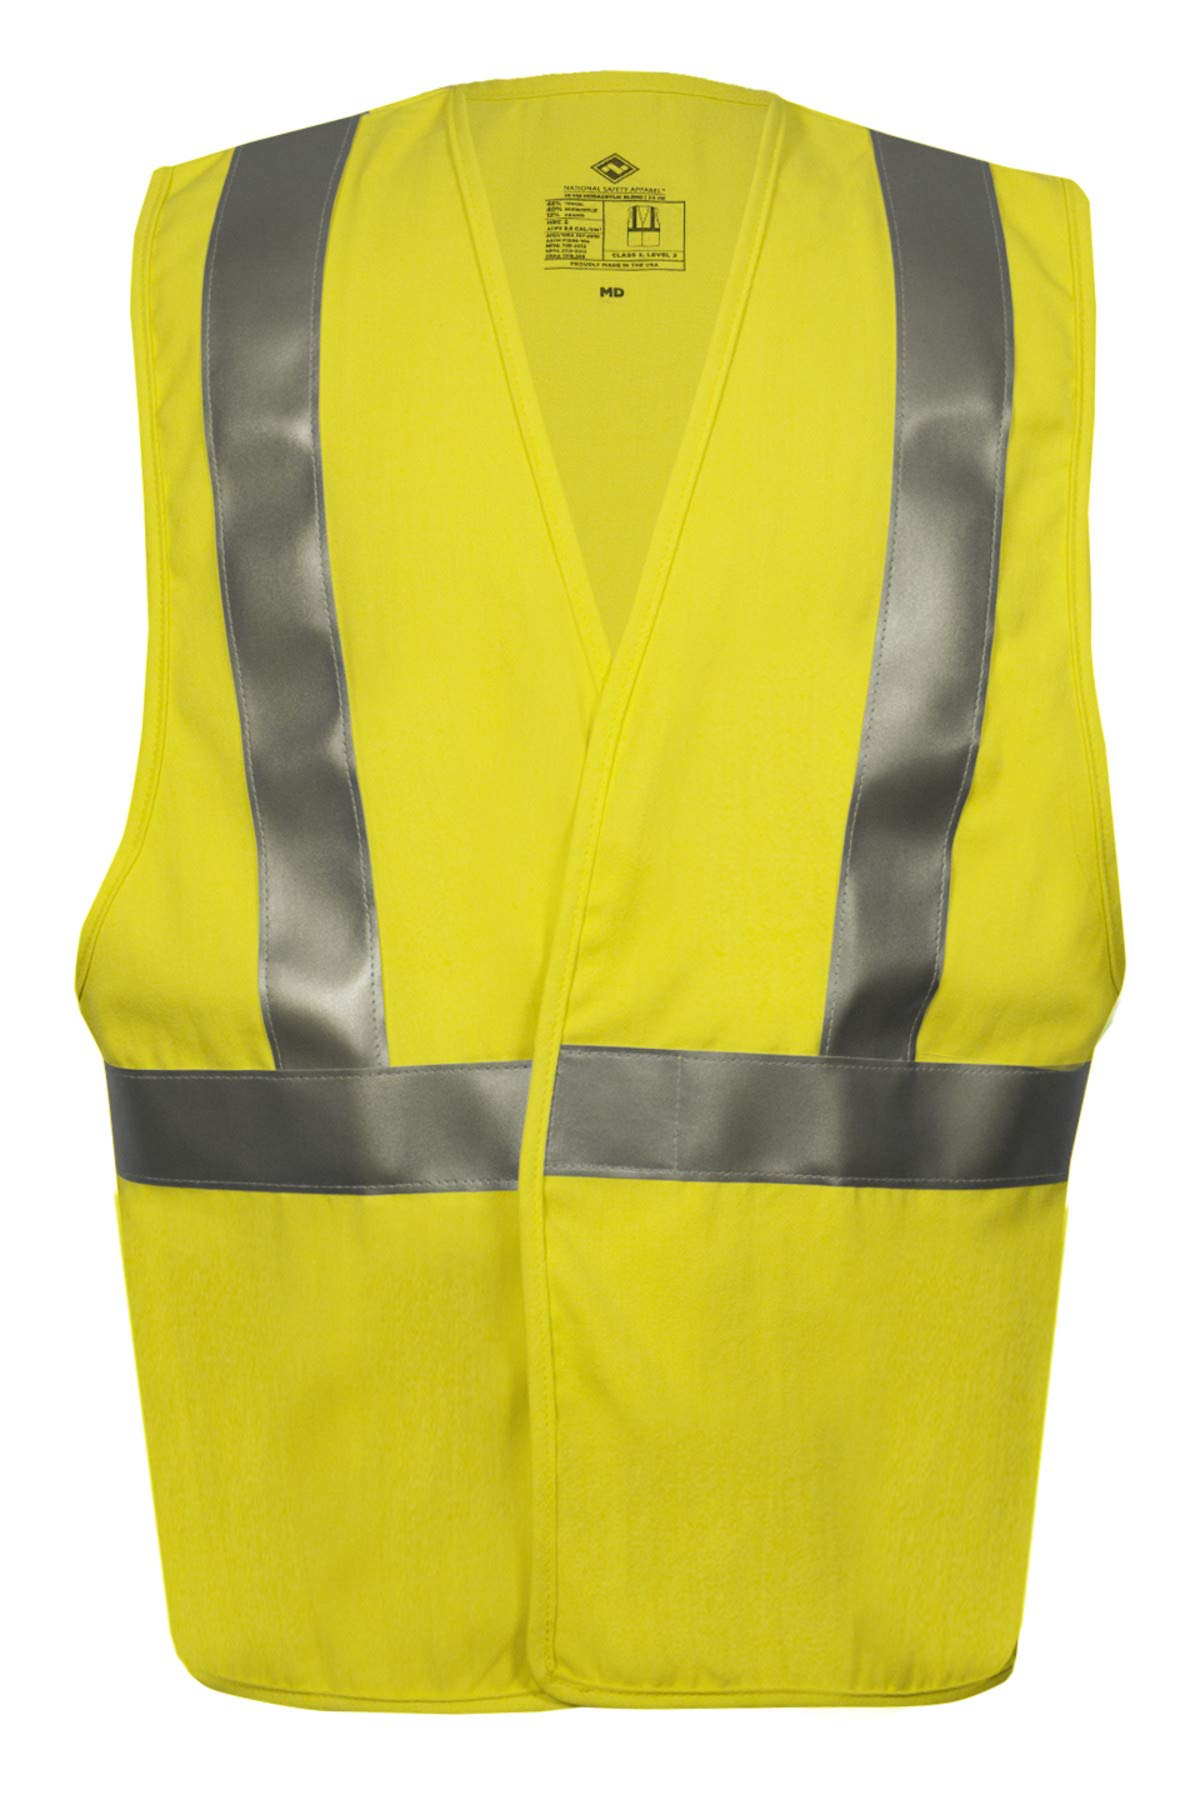 National Safety Apparel V20TV2VXL Contractor Class 2 FR Hi-Vis Safety Vest, X-Large, Fluorescent Yellow